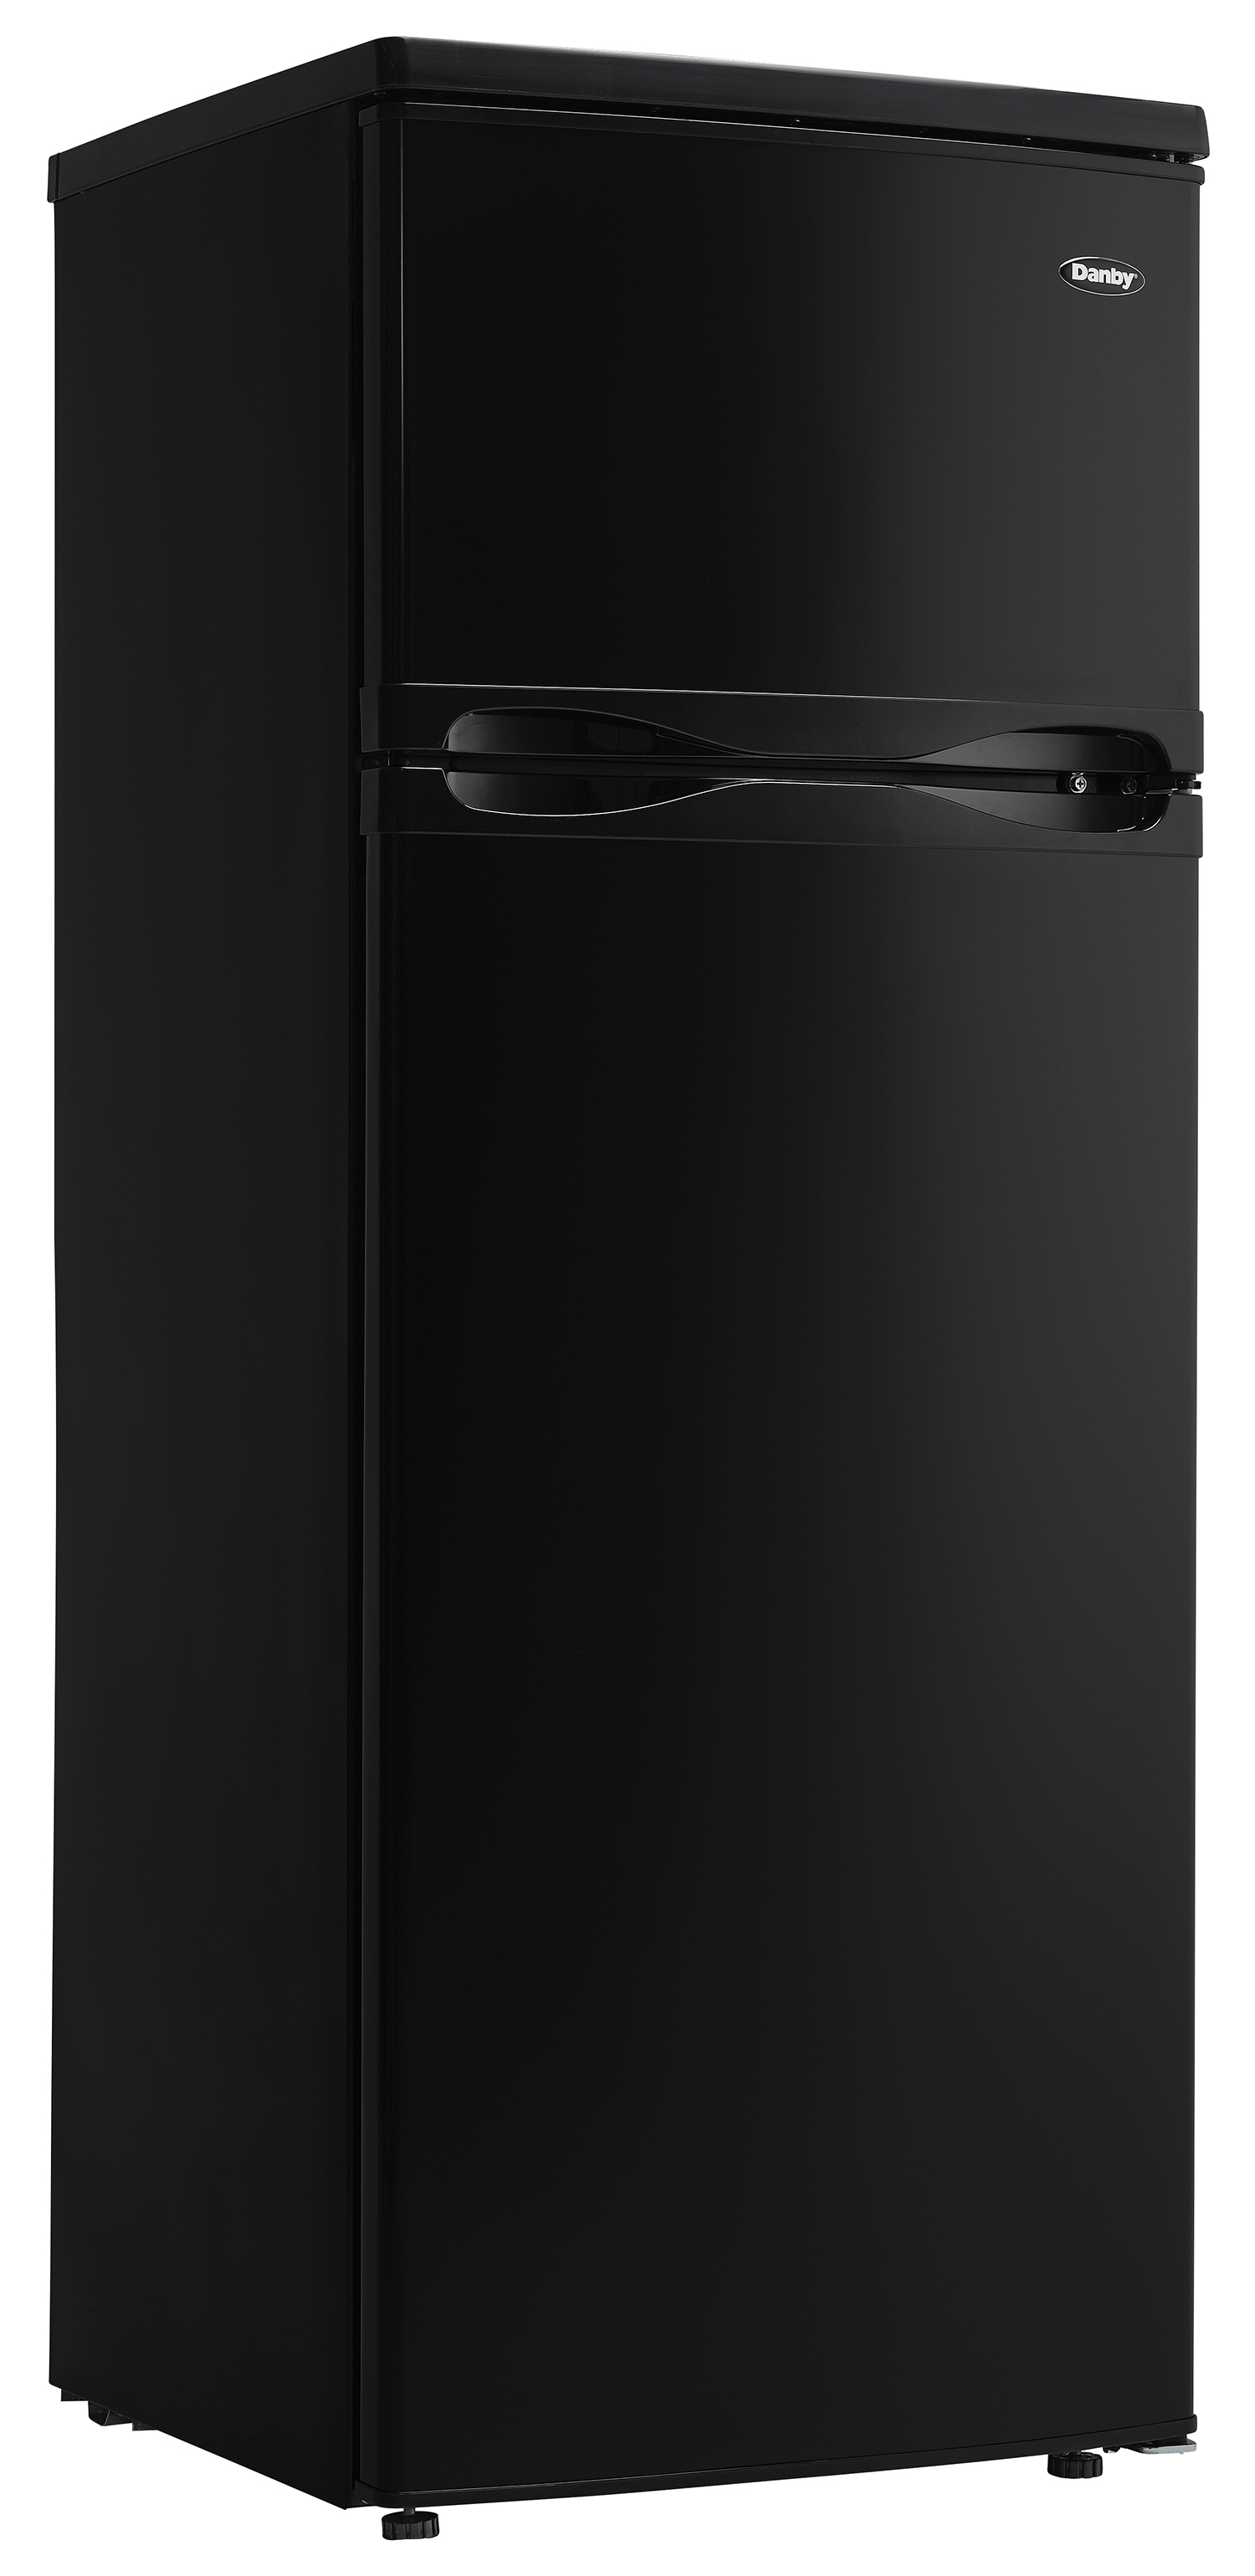 Dpf073c1bdb danby 7 3 cu ft apartment size for Apartment size ice maker